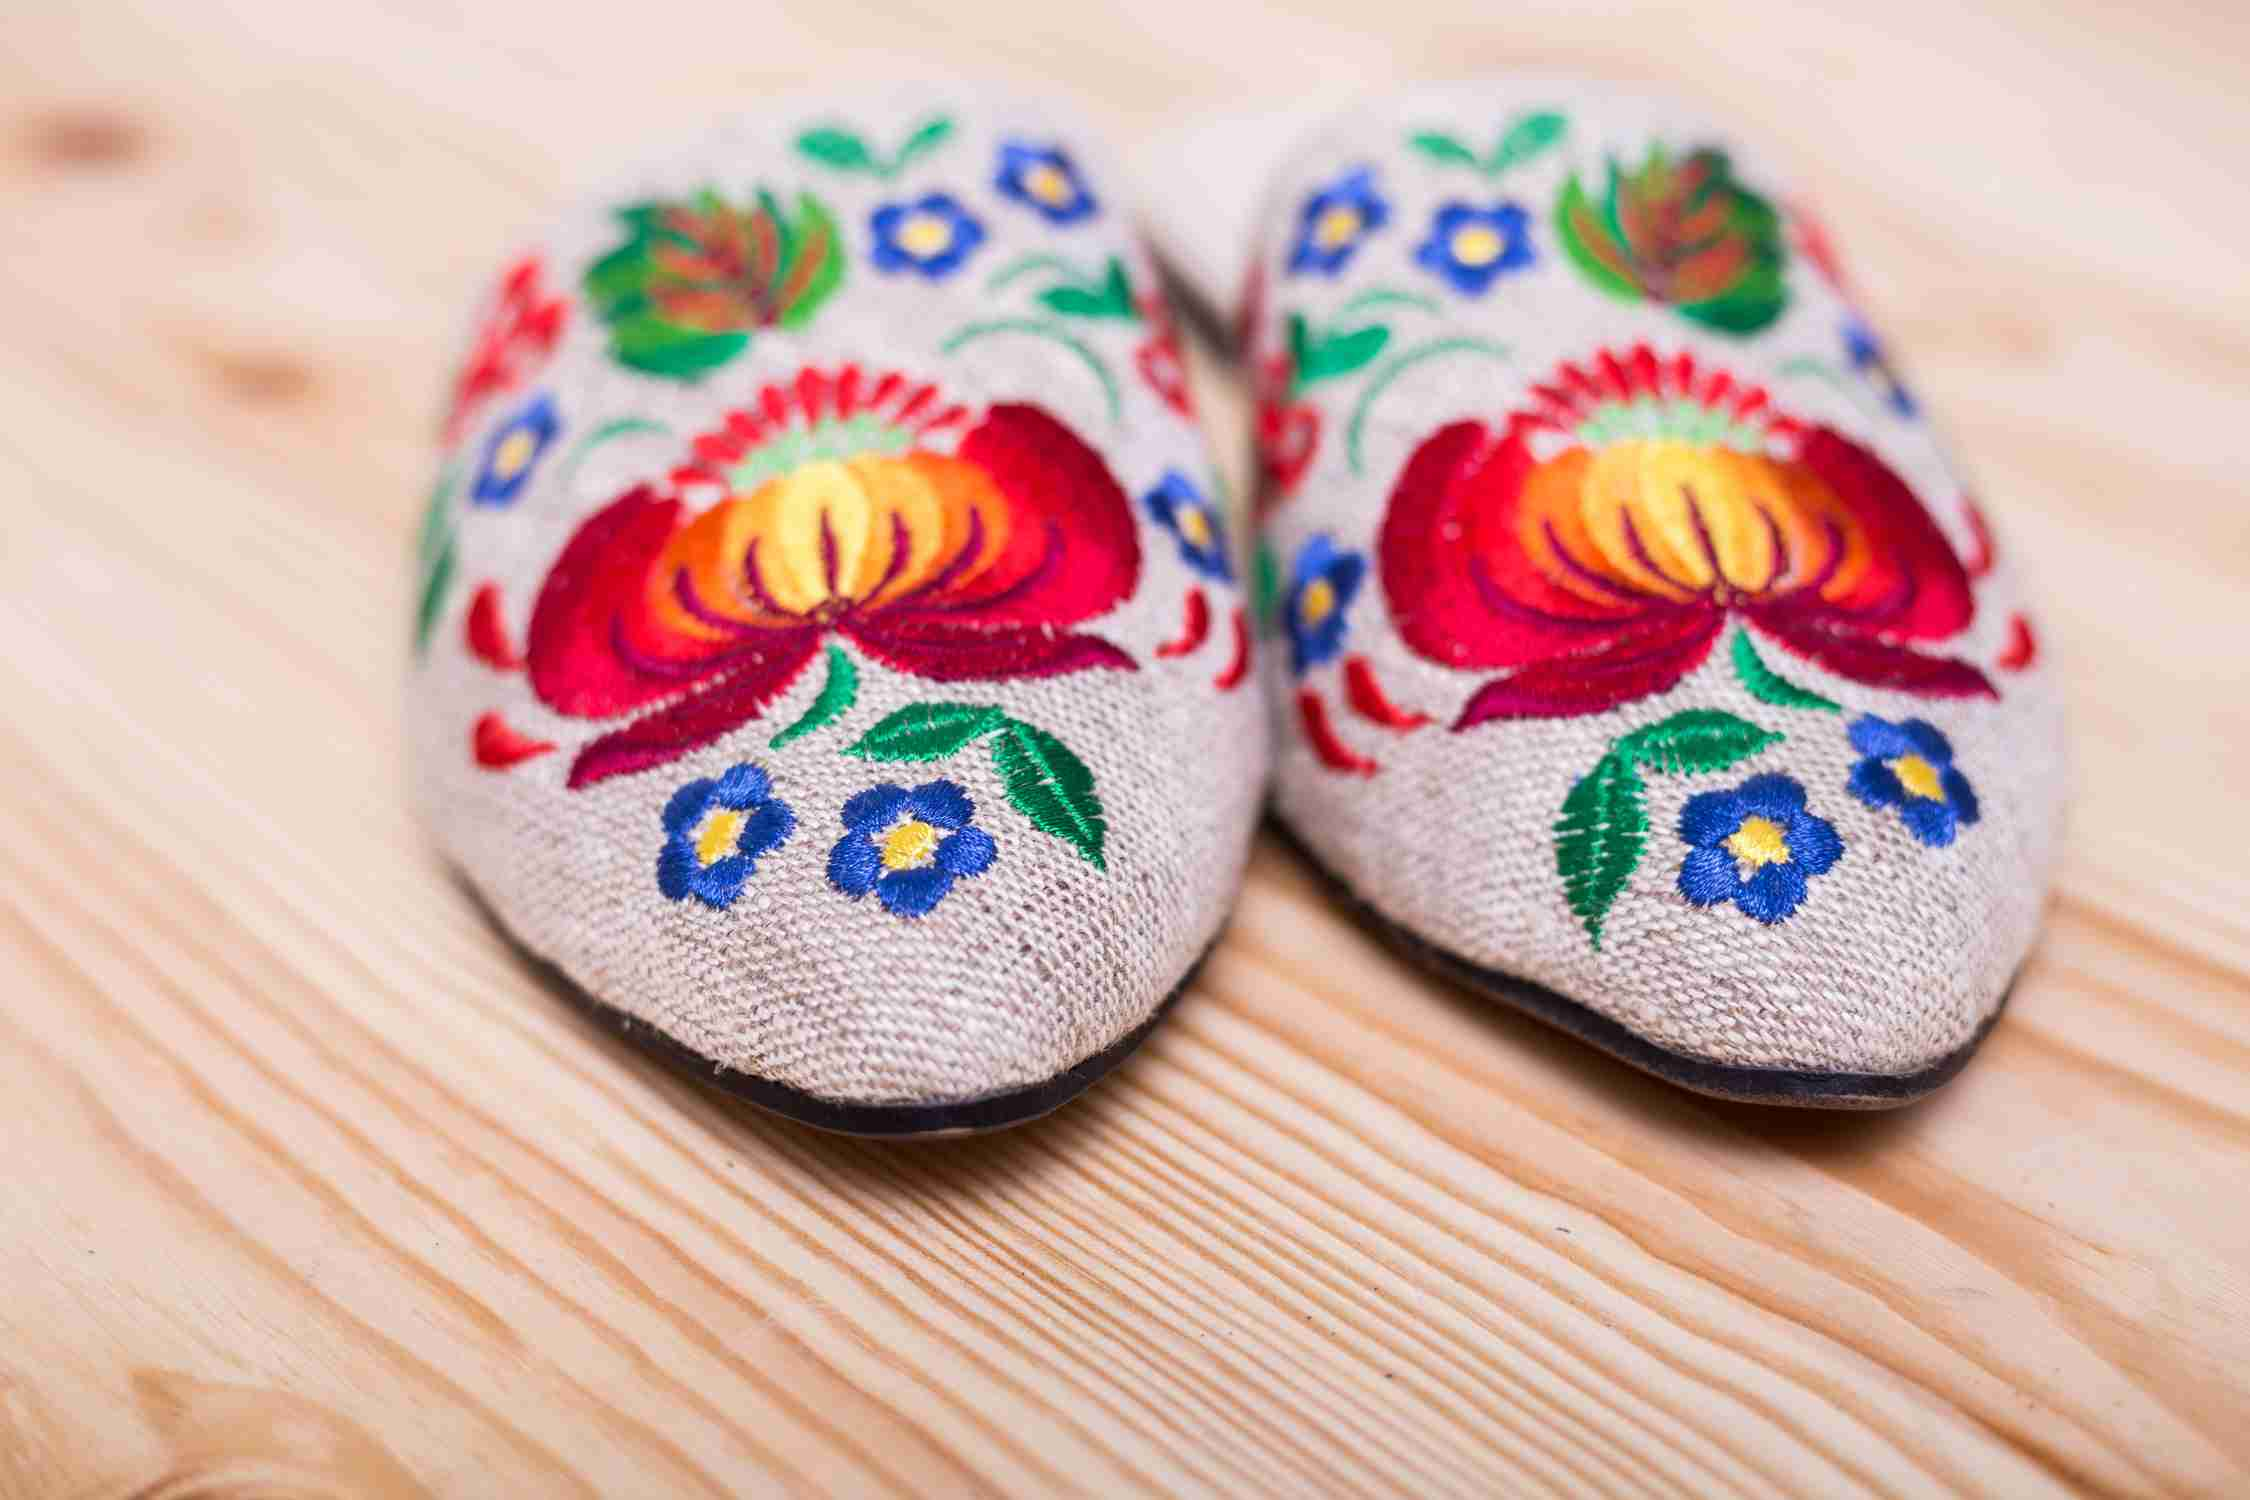 womens shoes with embroidery